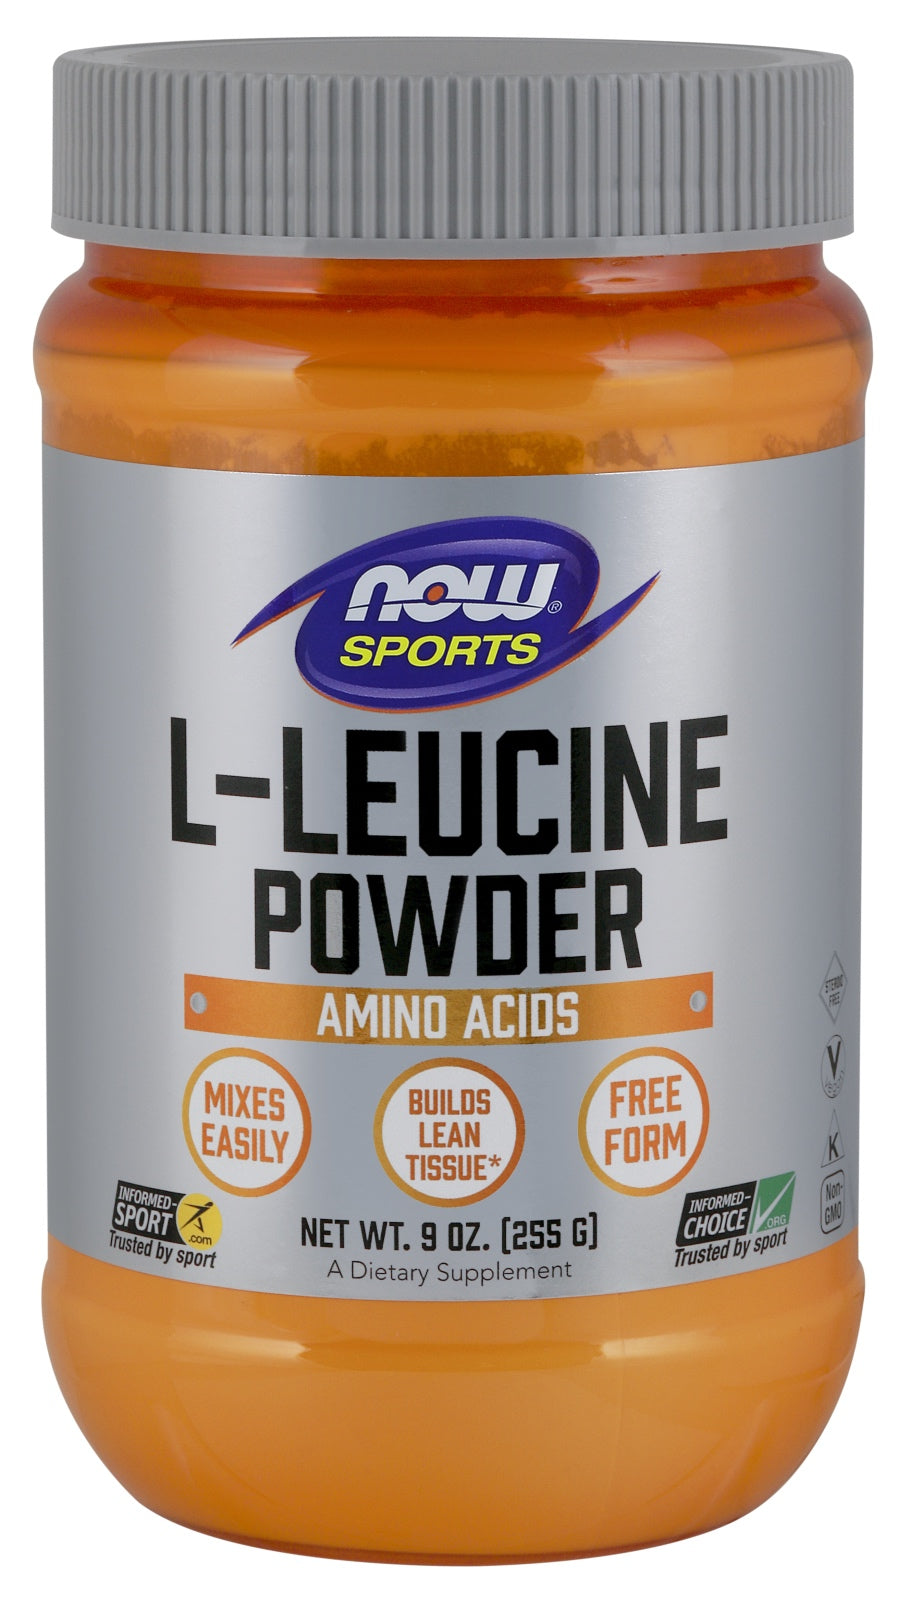 L-Leucine Powder, 9 oz.